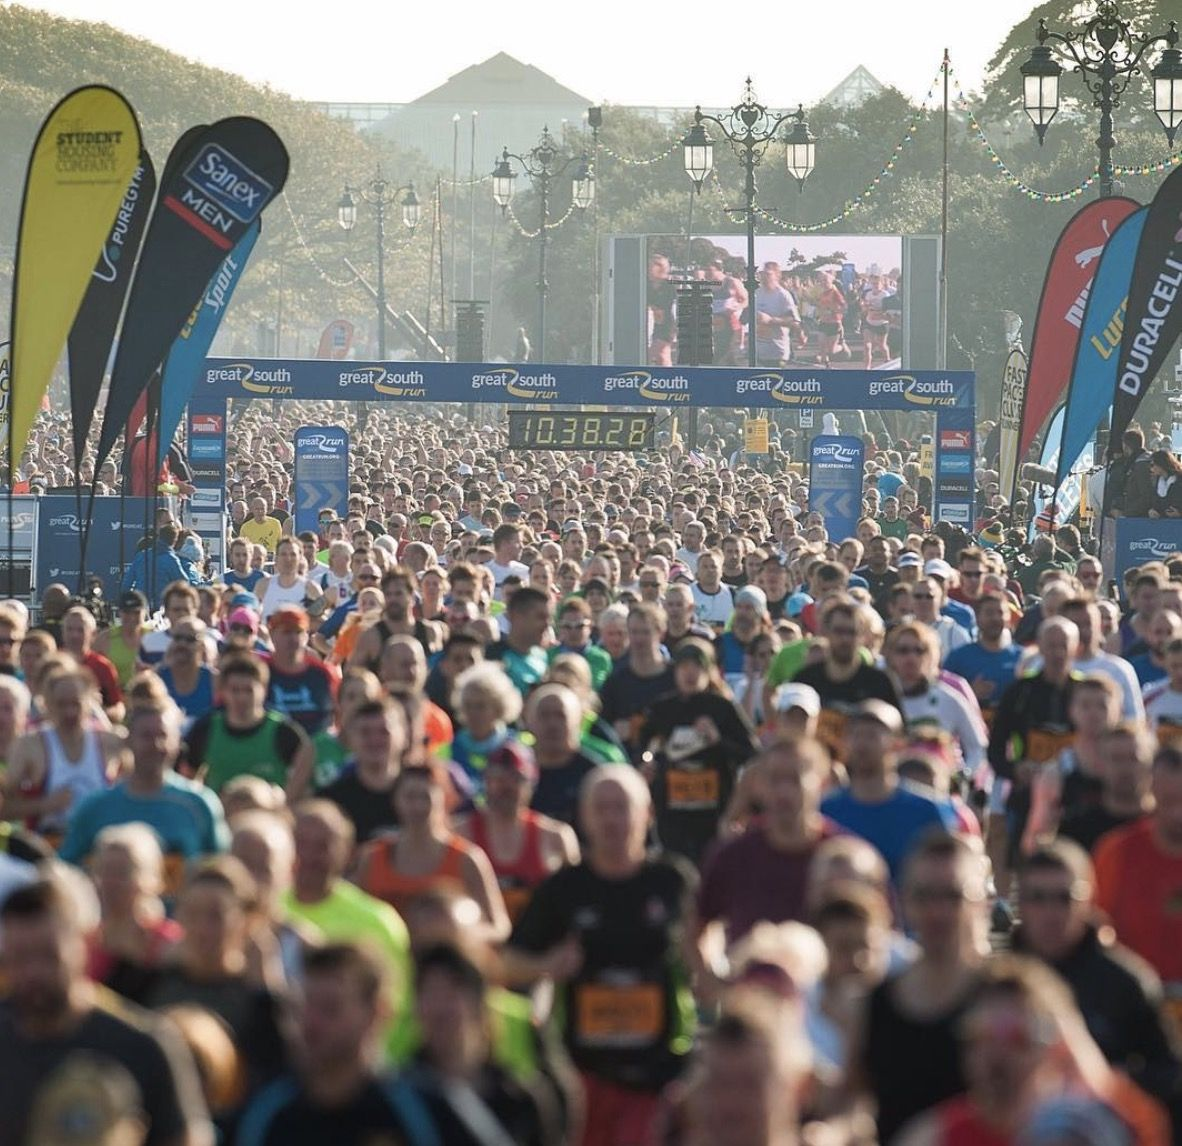 Everything you need to know about the Great South Run